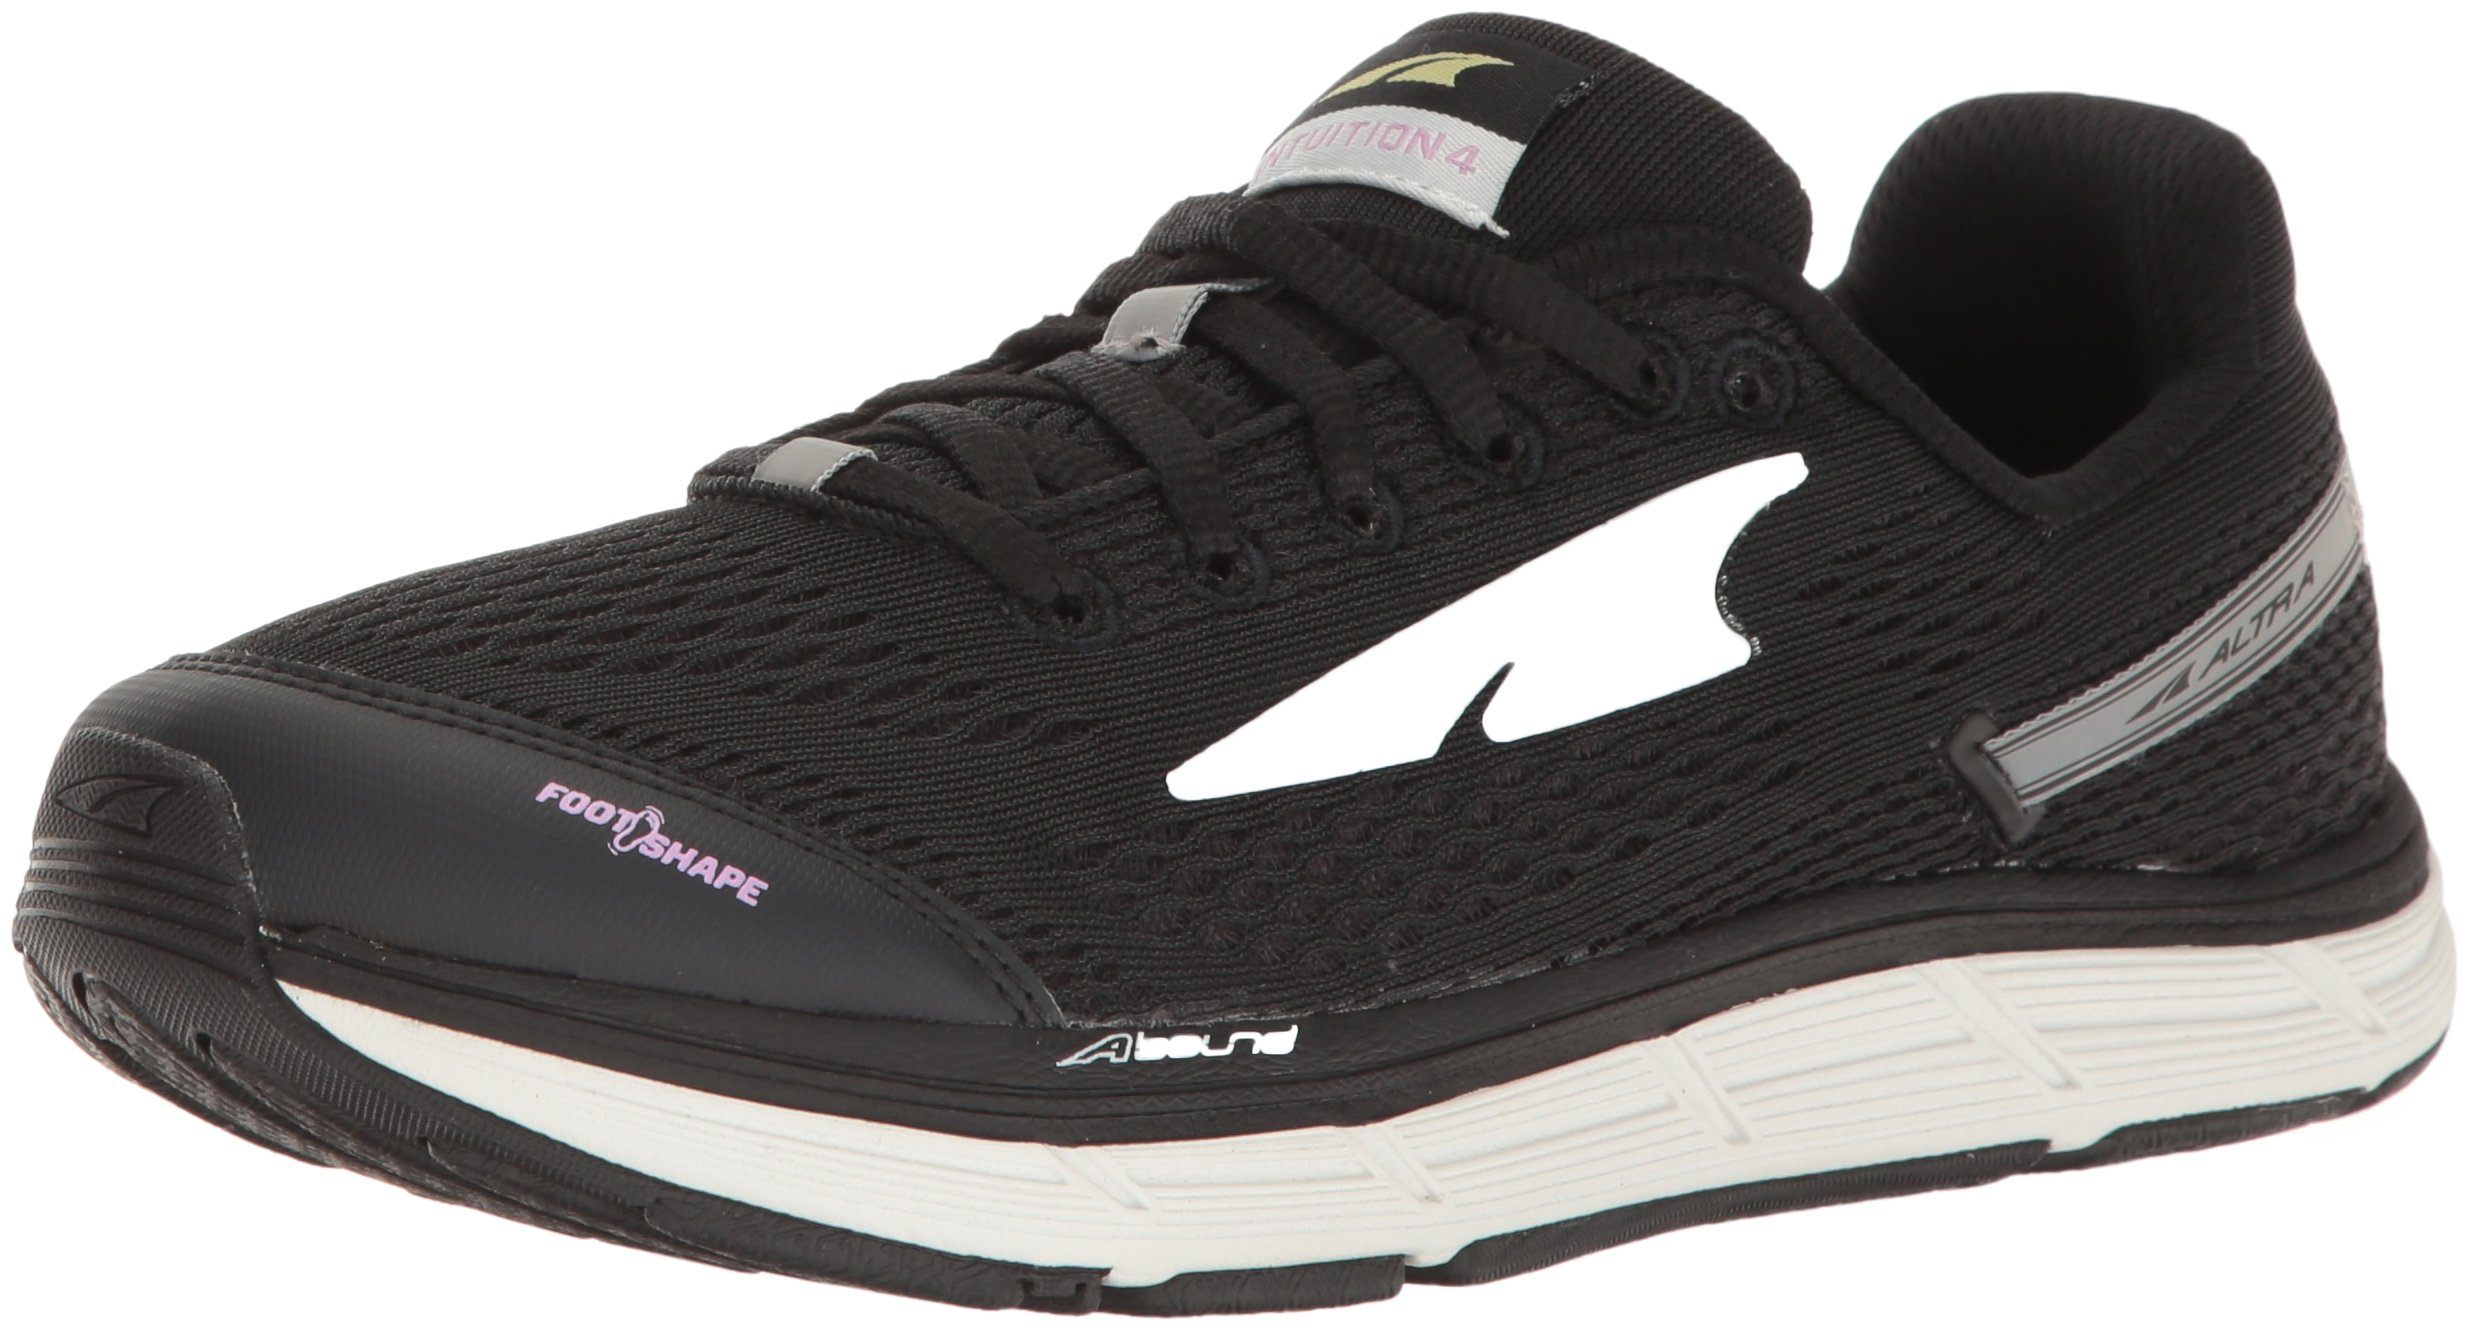 Altra Women's Intuition 4 Running Shoe, Black, 7 M US